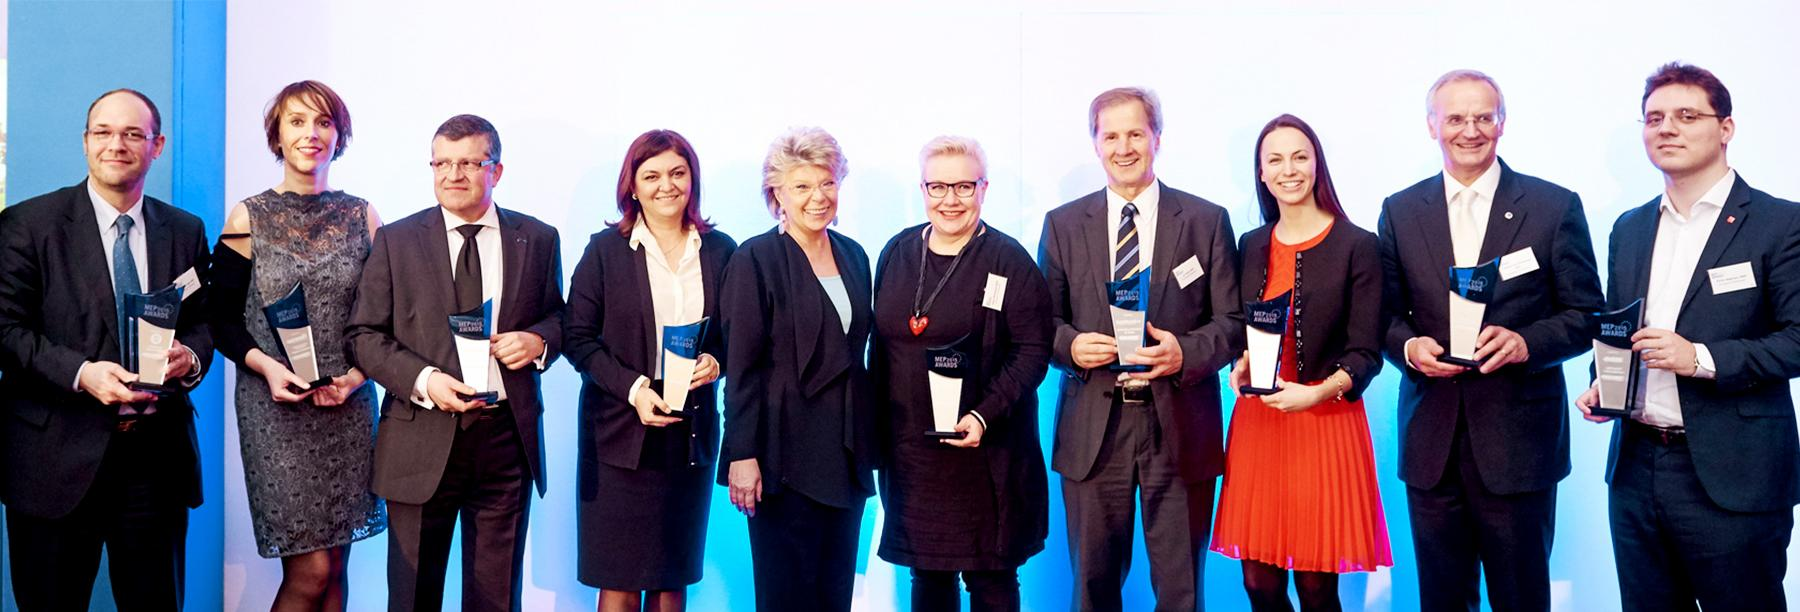 mep-awards.jpg